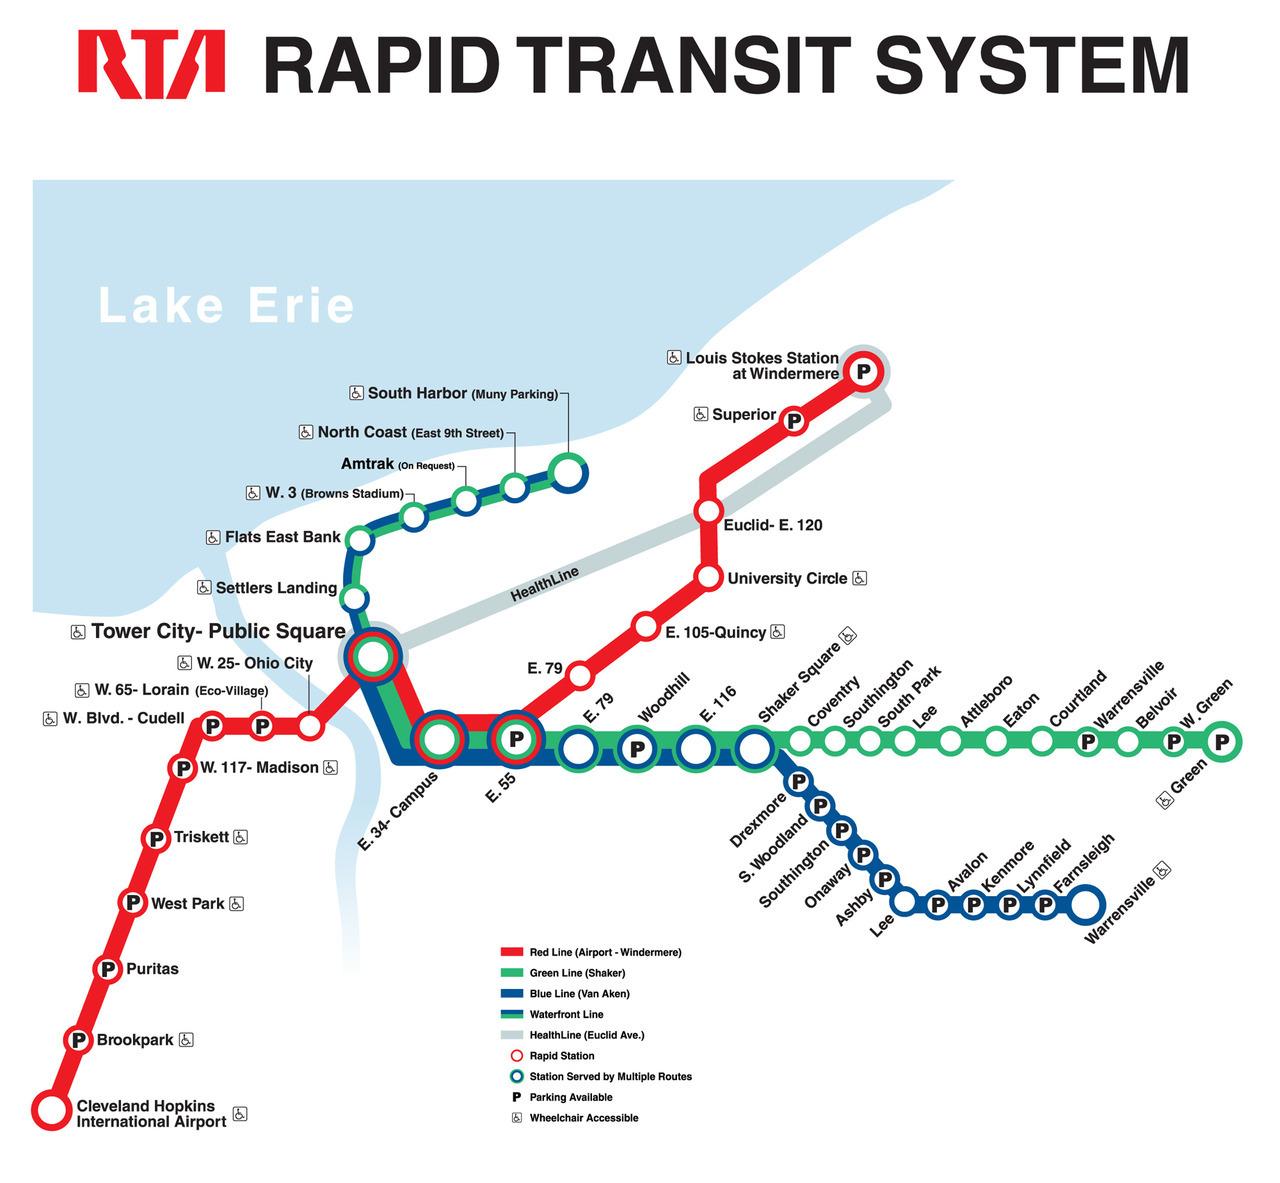 Official Map: Rapid Transit of Cleveland, Ohio After posting a photo of a vintage Cleveland RTA rapid transit map, I was curious as to what the current map looked like. Oh dear. Maybe I shouldn't have looked. Have we been there? No. What we like: Sadly, the best thing about this map is the nicely retro-styled RTA agency logo. As for the rest… What we don't like: Multiple angles for route lines instead of the standard 45-degrees looks messy and poorly thought out. Strange spacing of stations on the eastern part of the Green Line. Multicoloured concentric rings for interchange stations gives a strange rainbow vibe to the whole map that becomes quite jarring when four colours -green, red, blue and silver - are used at the Tower City station. Strangely and inconsistently, this concentric ring device is not used on the Waterfront Line, with two half rings being used instead. The Waterfront Line is also drawn with thinner lines than the rest of the map, which confused me greatly at first: isn't it just an extension of the Green and Blue Lines? I had to do some research to find out that the Waterfront Line only operates on weekends - an incredibly vital piece of operating information that isn't indicated on the map at all. A simple addition to the legend would have worked nicely here. Embarrassingly desultory addition of the HealthLine BRT route. Our rating: Ugh. An ugly, confusing, inconsistent mess. One star.  (Source: Official RTA website)